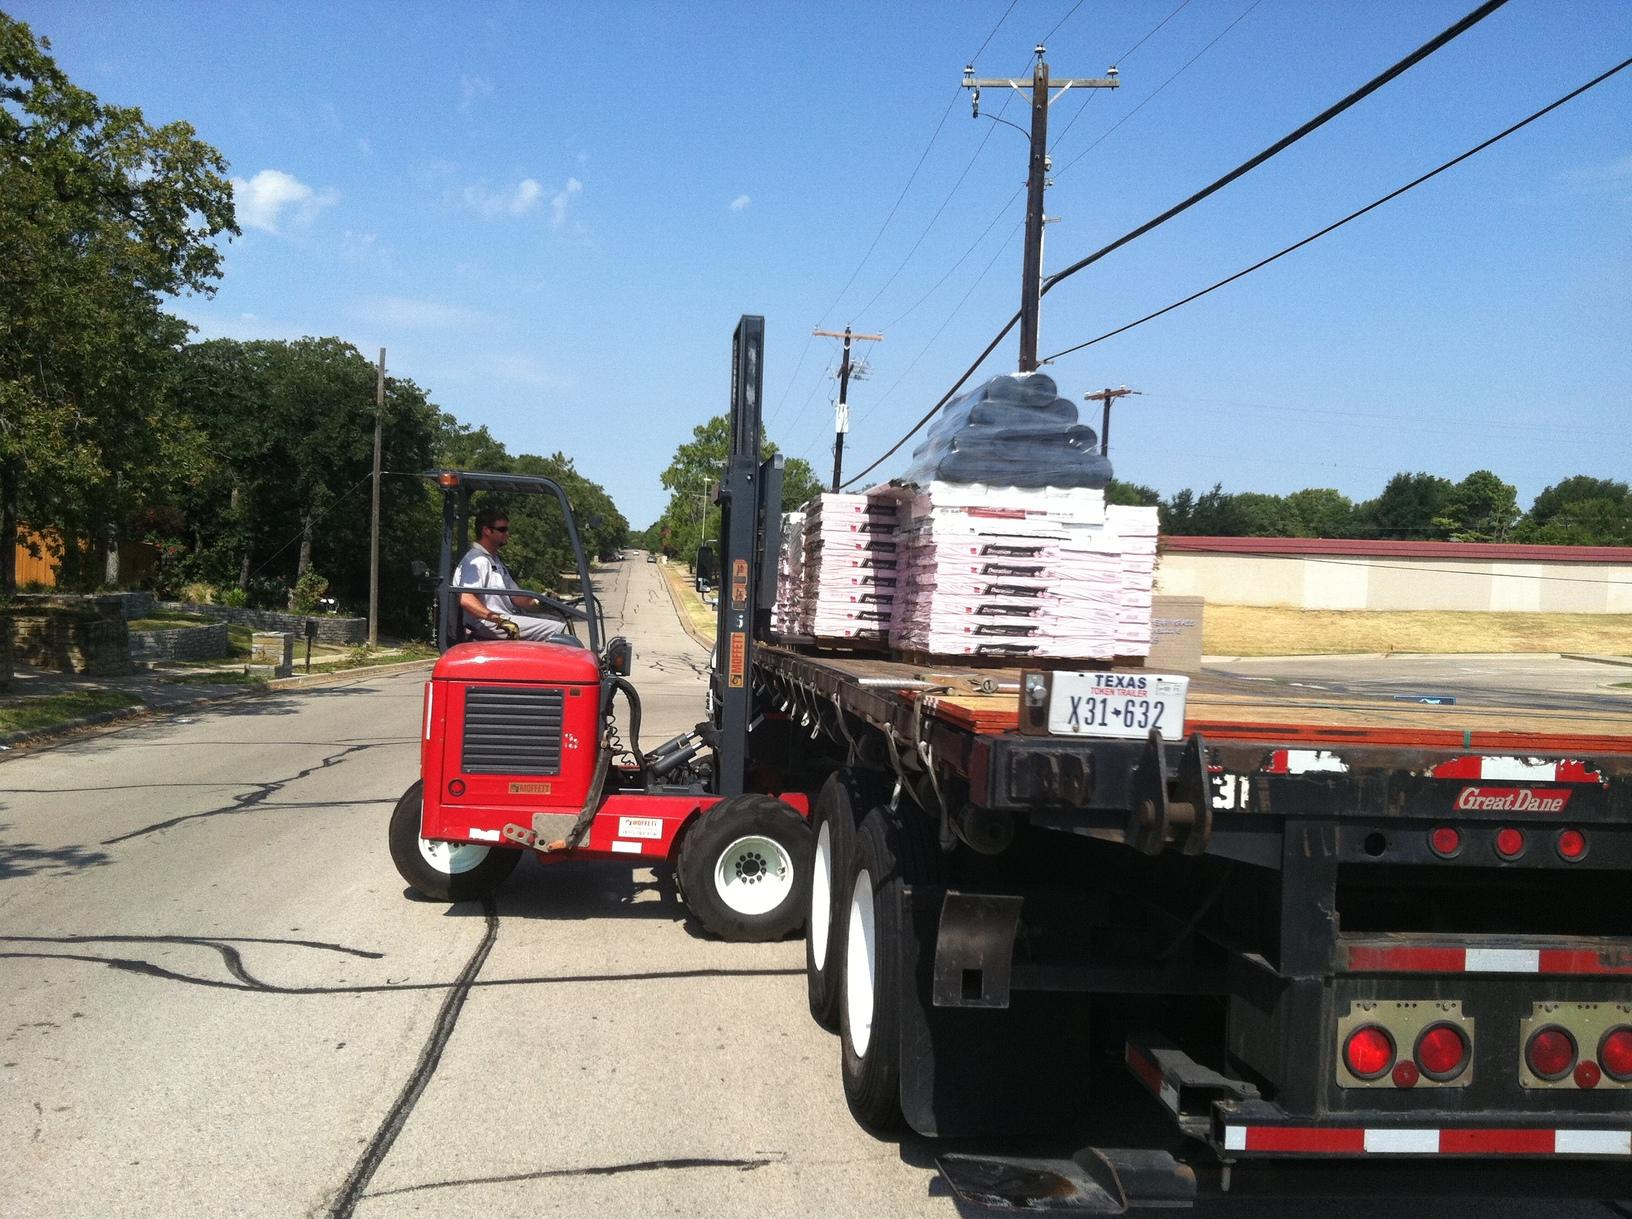 Offloading Your Materials